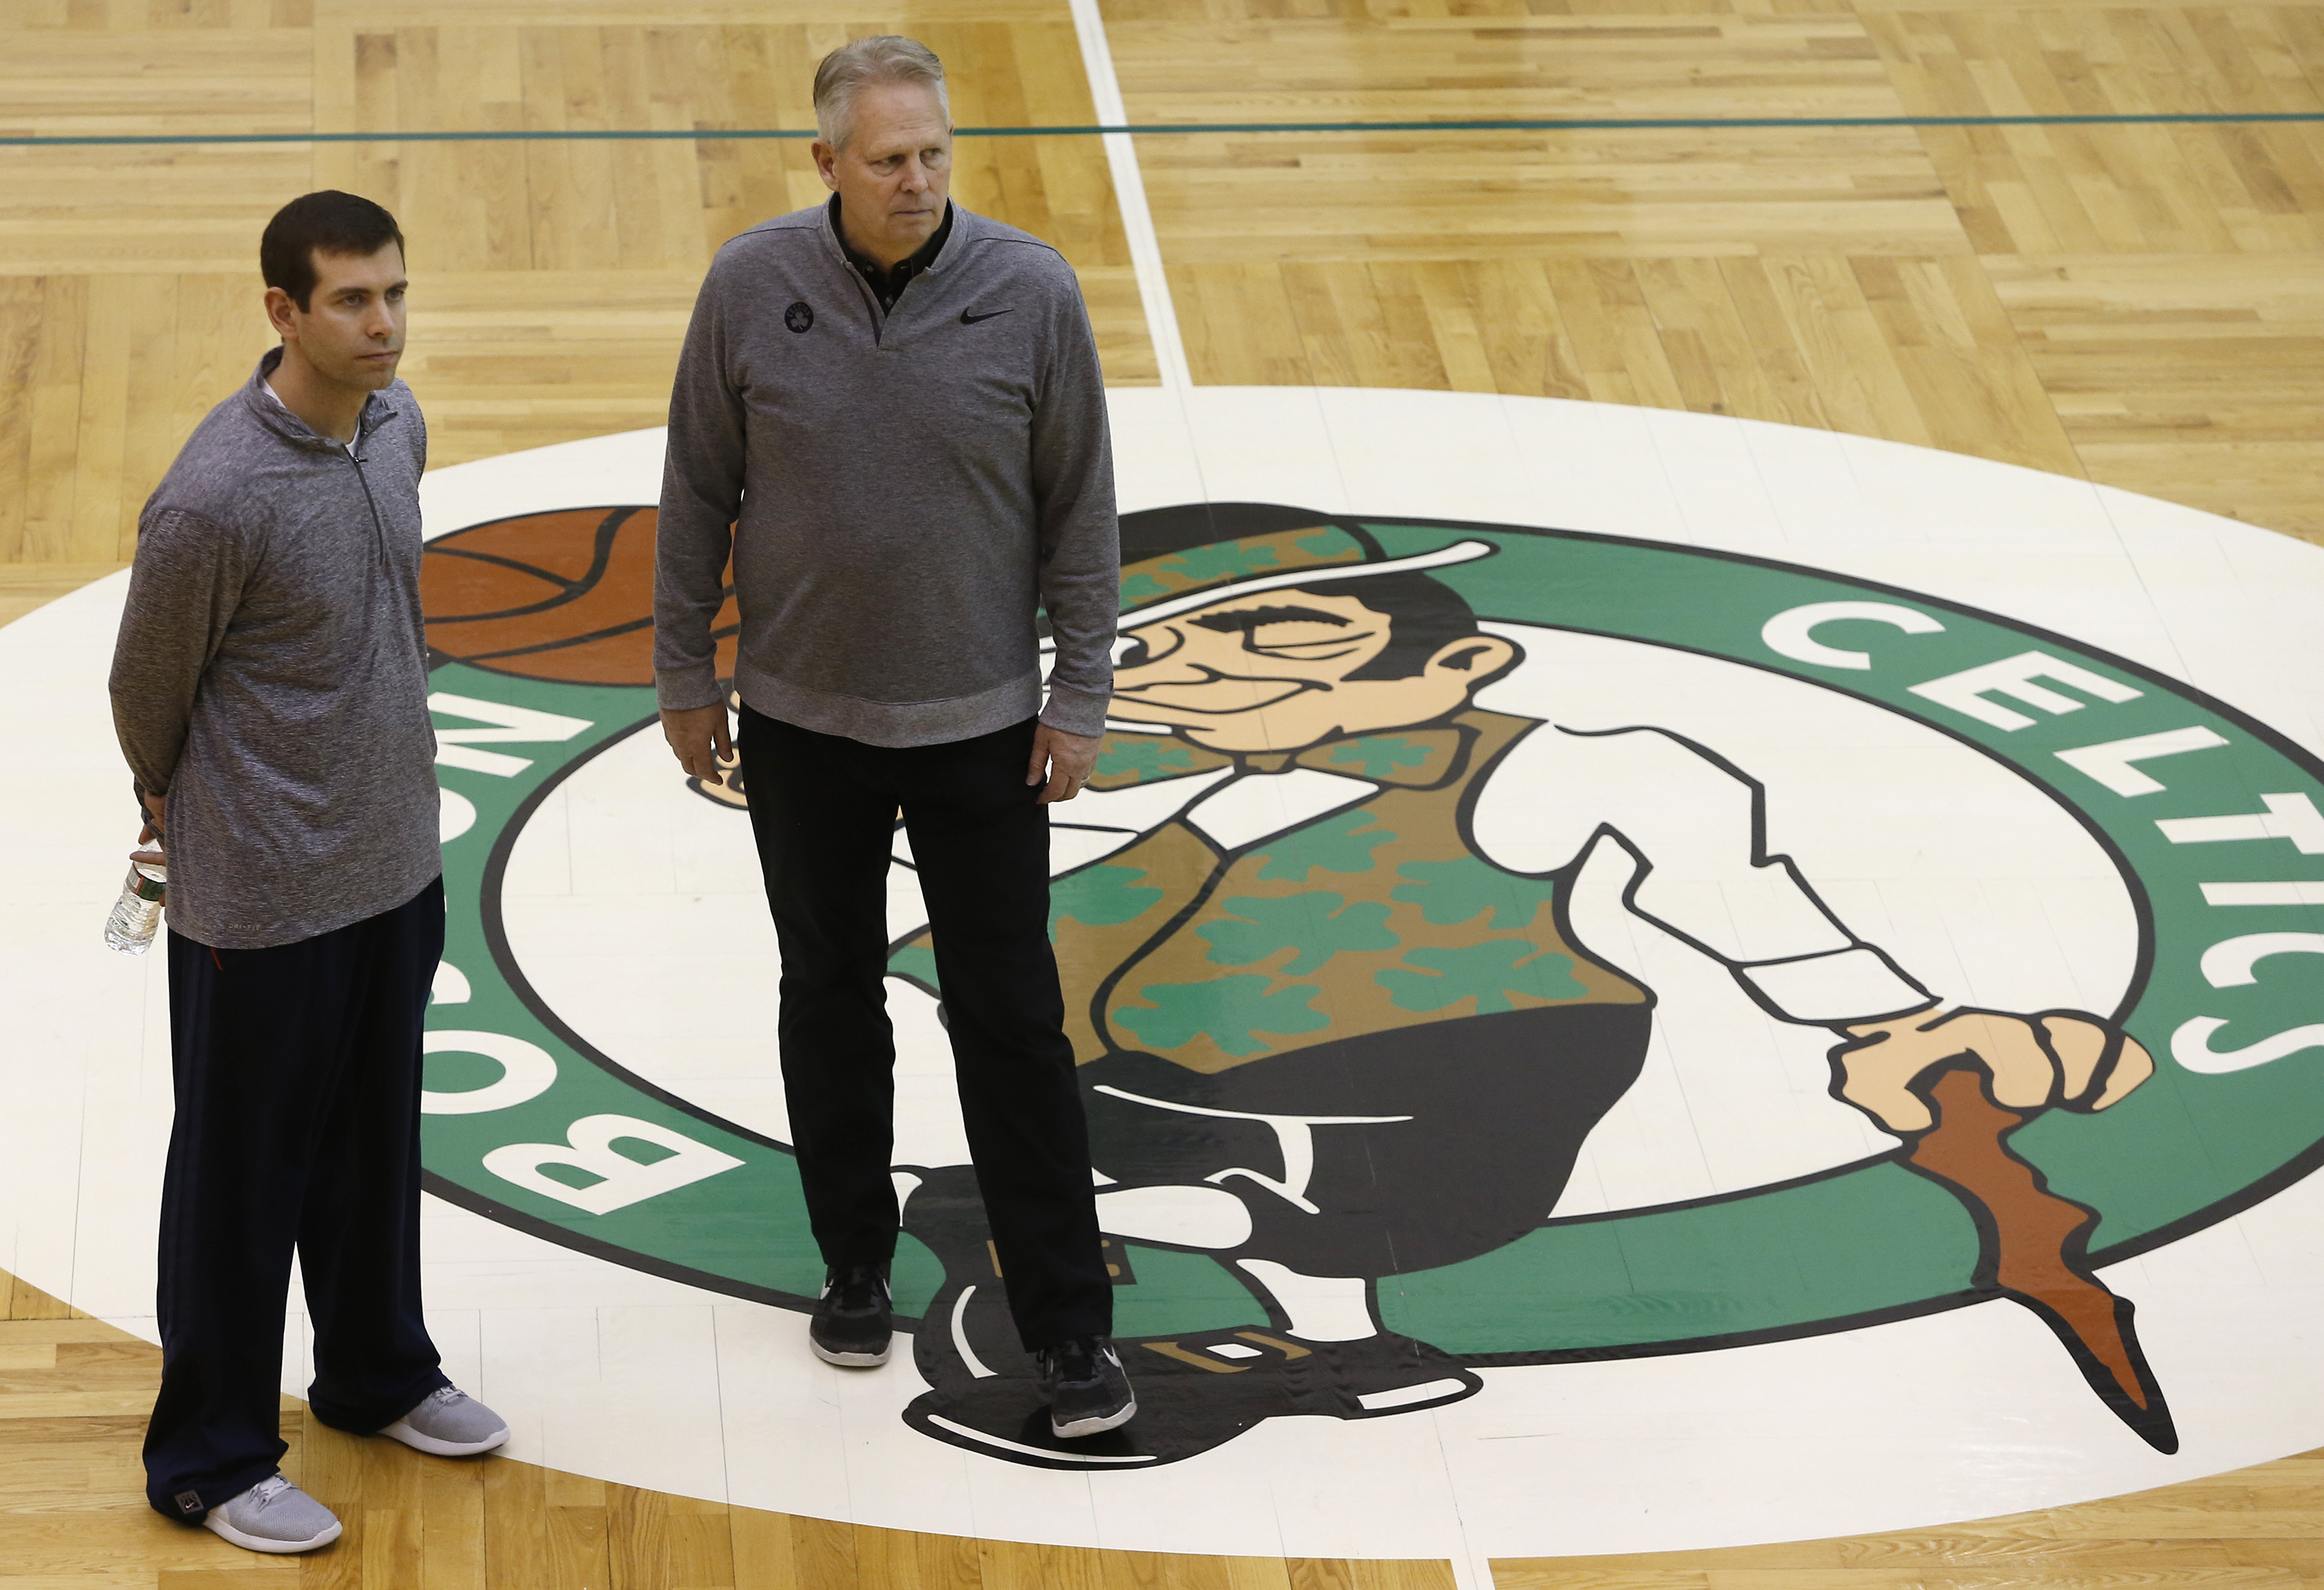 Boston Celtics Shockingly Shake Things Up, and Jason Kidd Appears to Be in the Middle of It